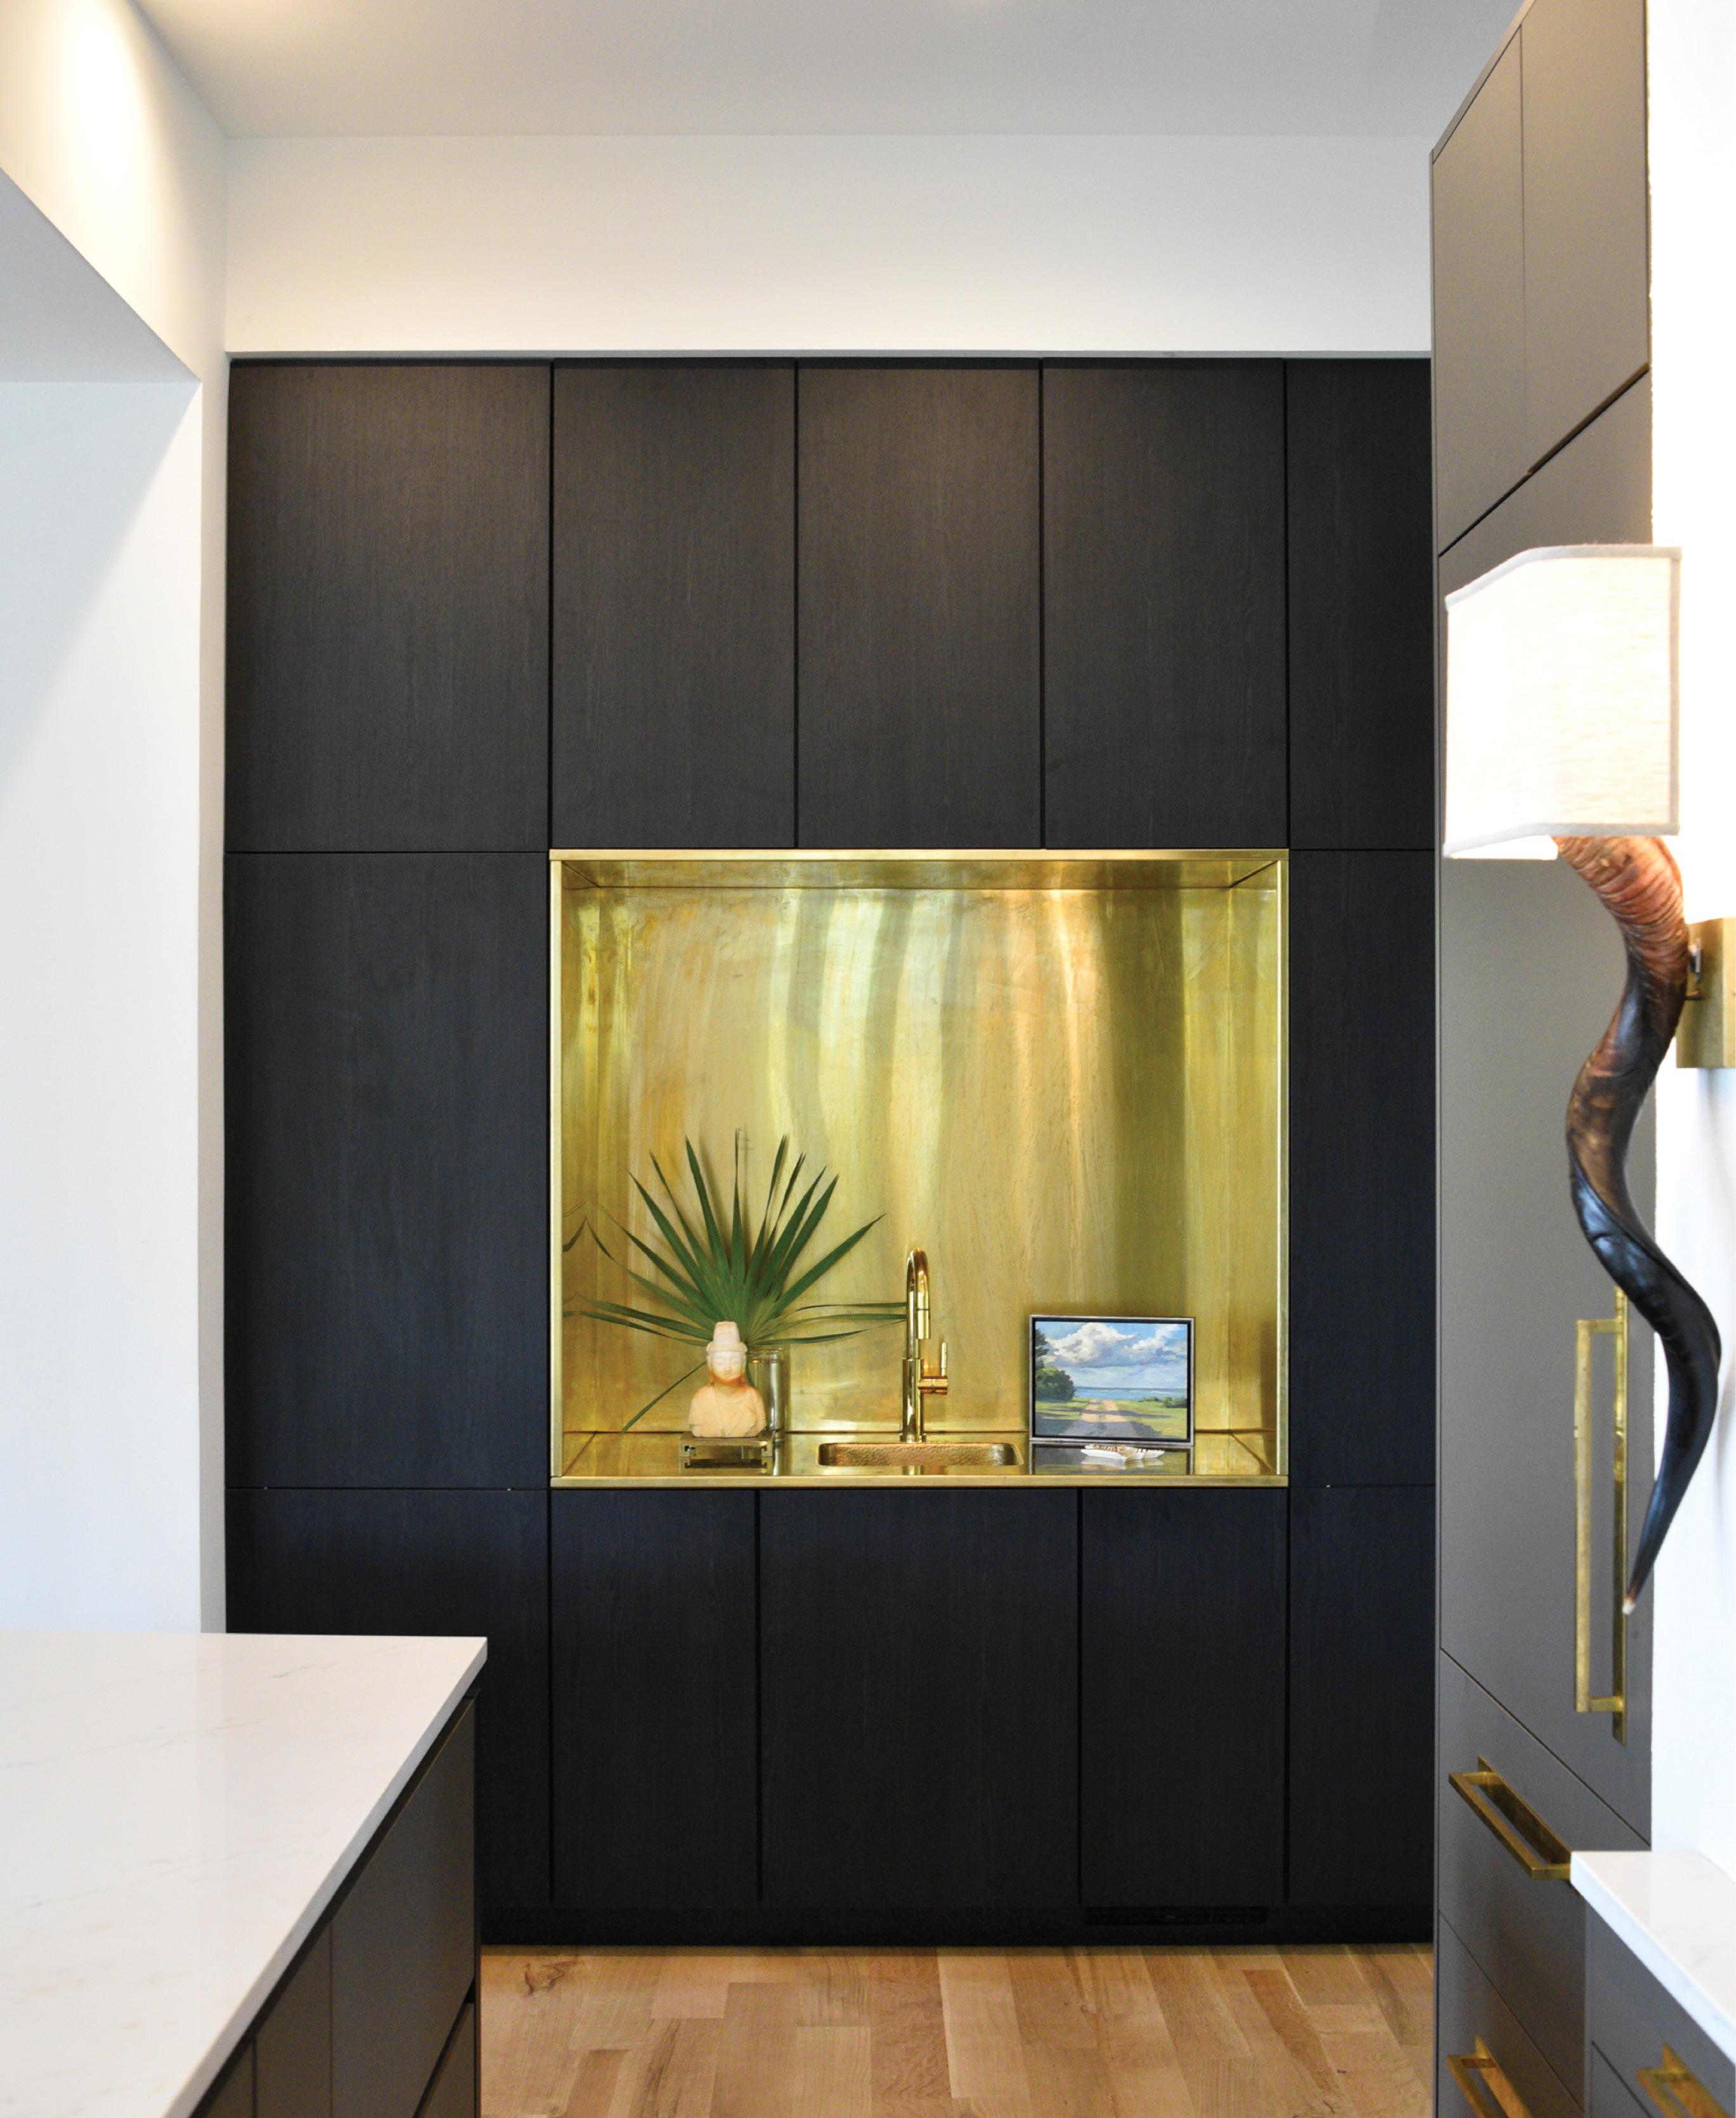 This unlacquered brass wet bar, fabricated by Mount Pleasant metalworker Jon Mako, adds a warming graphic element to the dramatic kitchen.